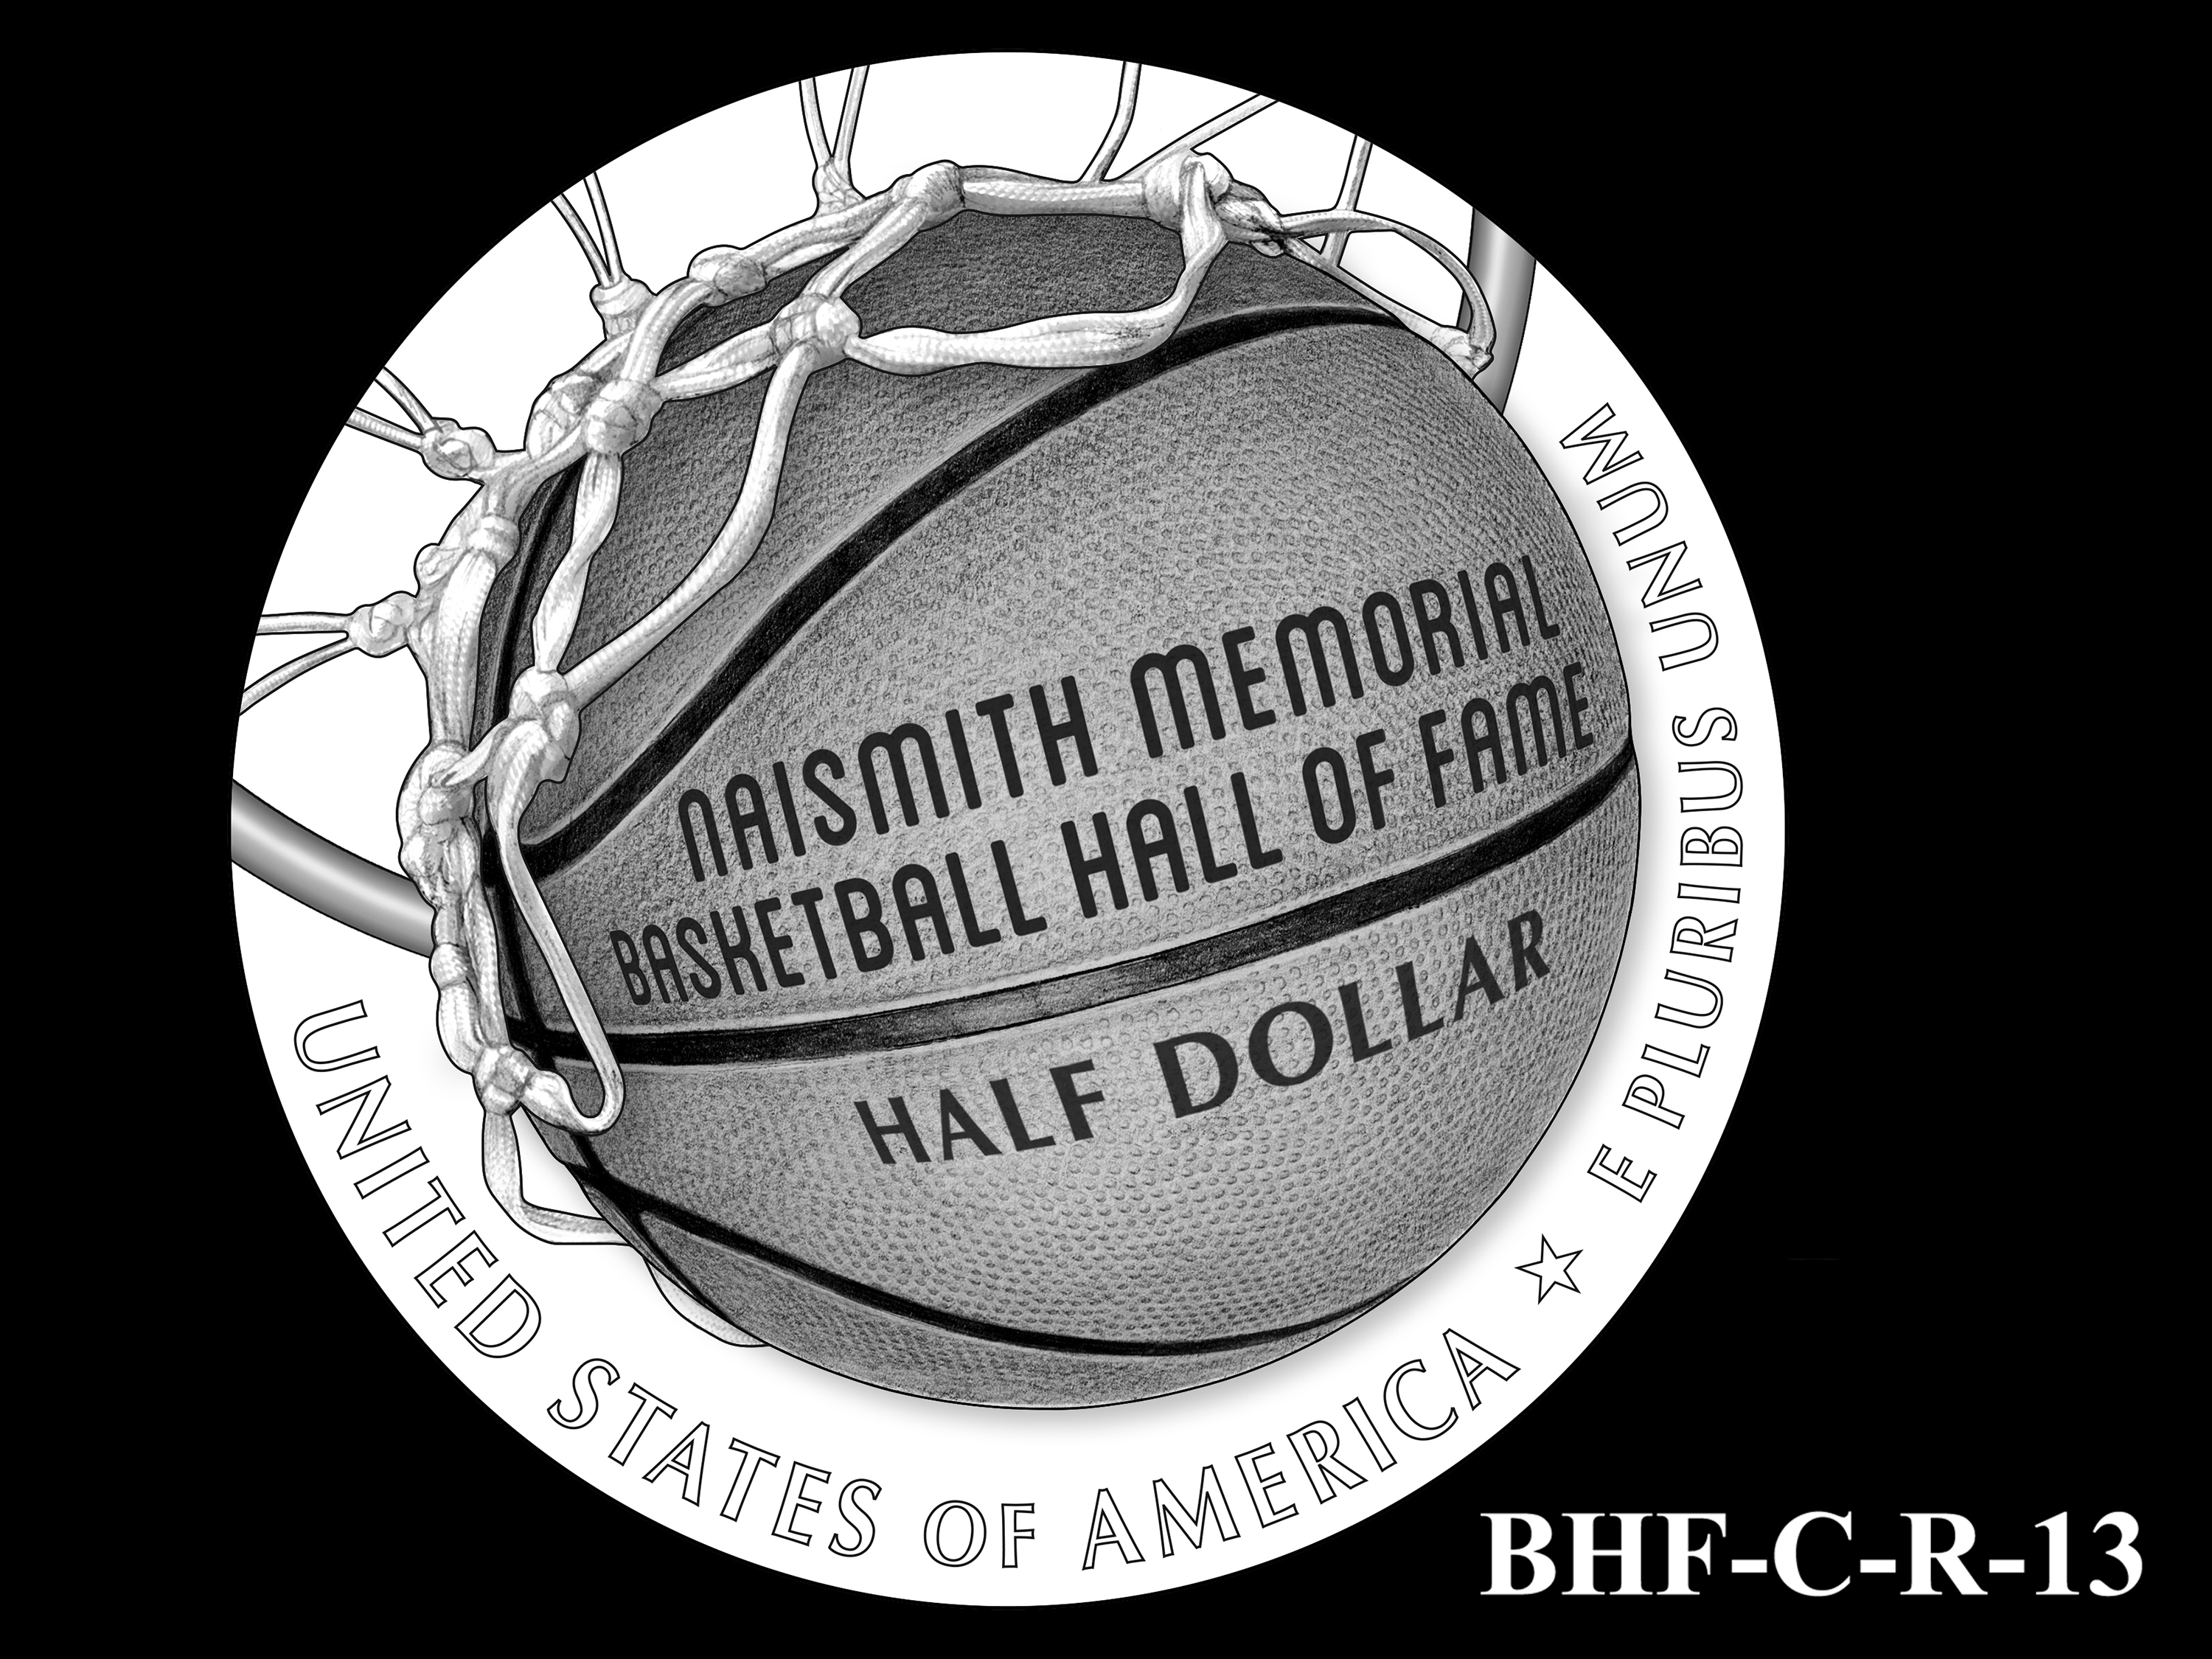 BHF-C-R-13 -- 2020 Basketball Hall of Fame Commemorative Coin Program - Clad Reverse